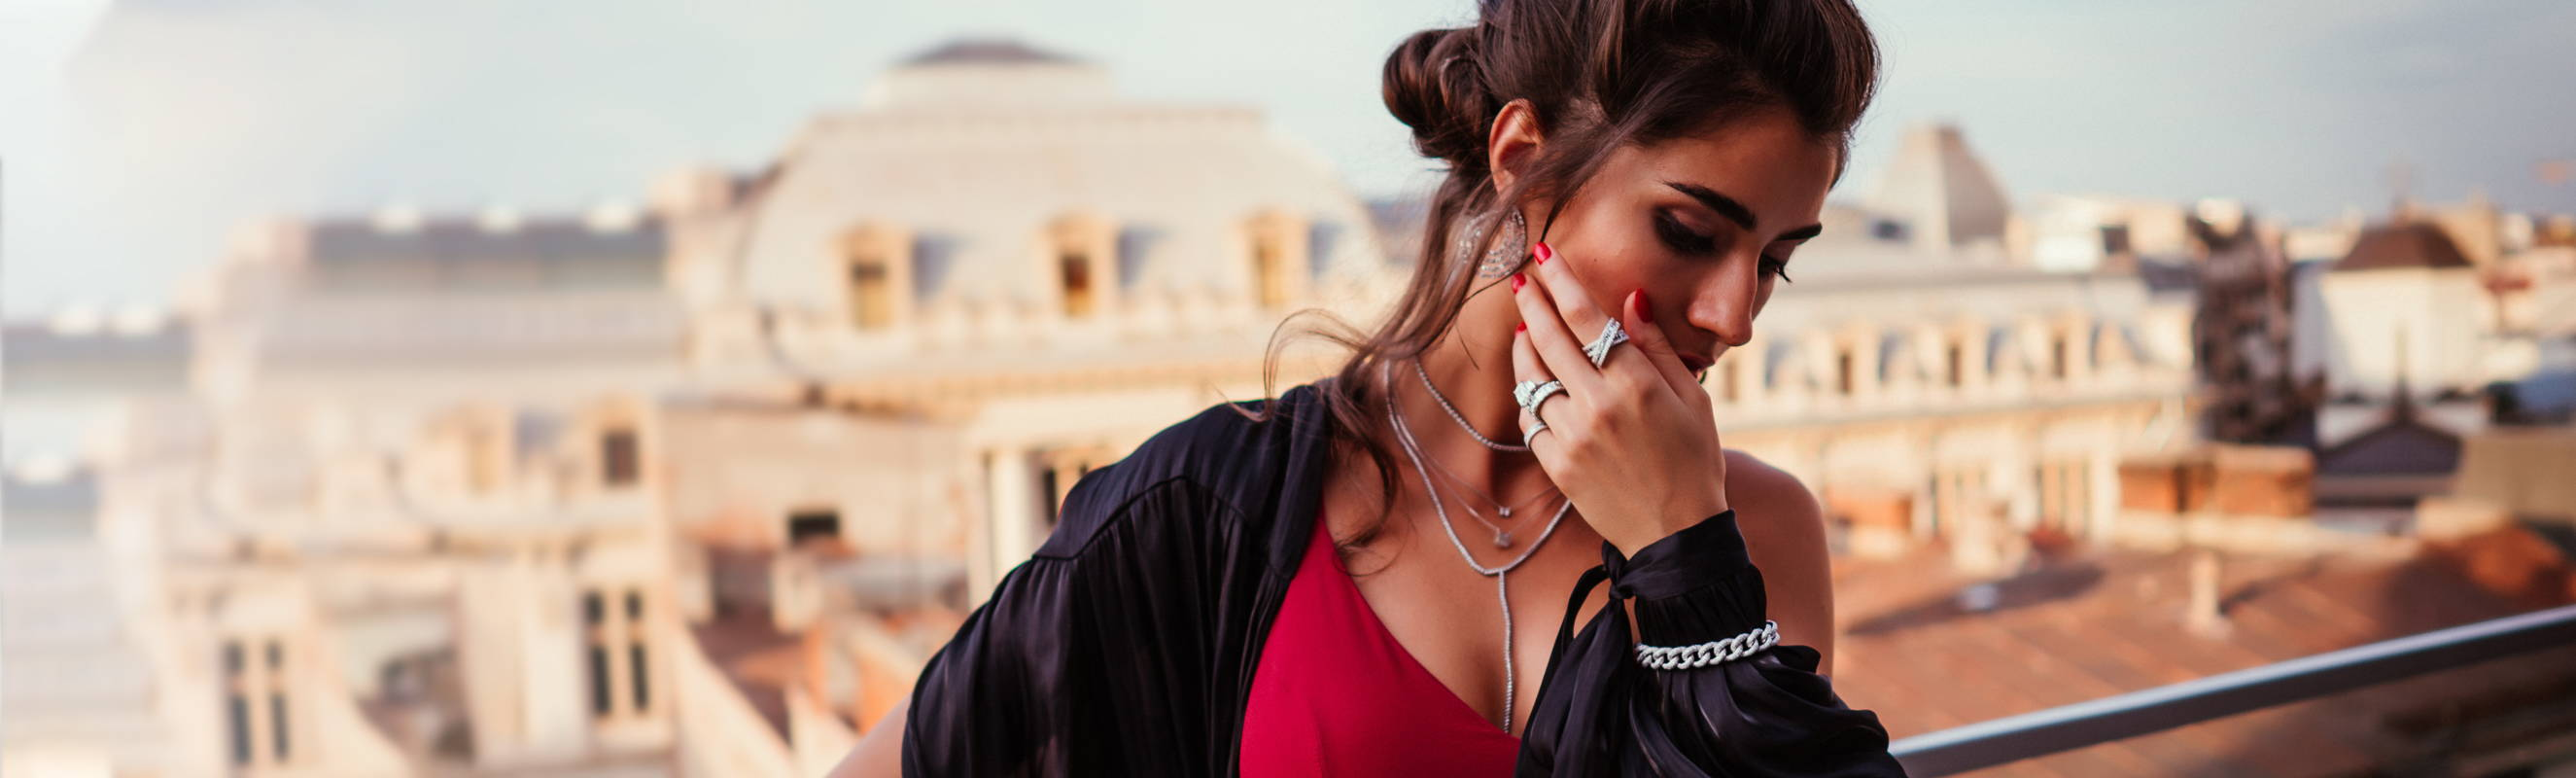 Model on rooftop wearing Ring Concierge jewelry